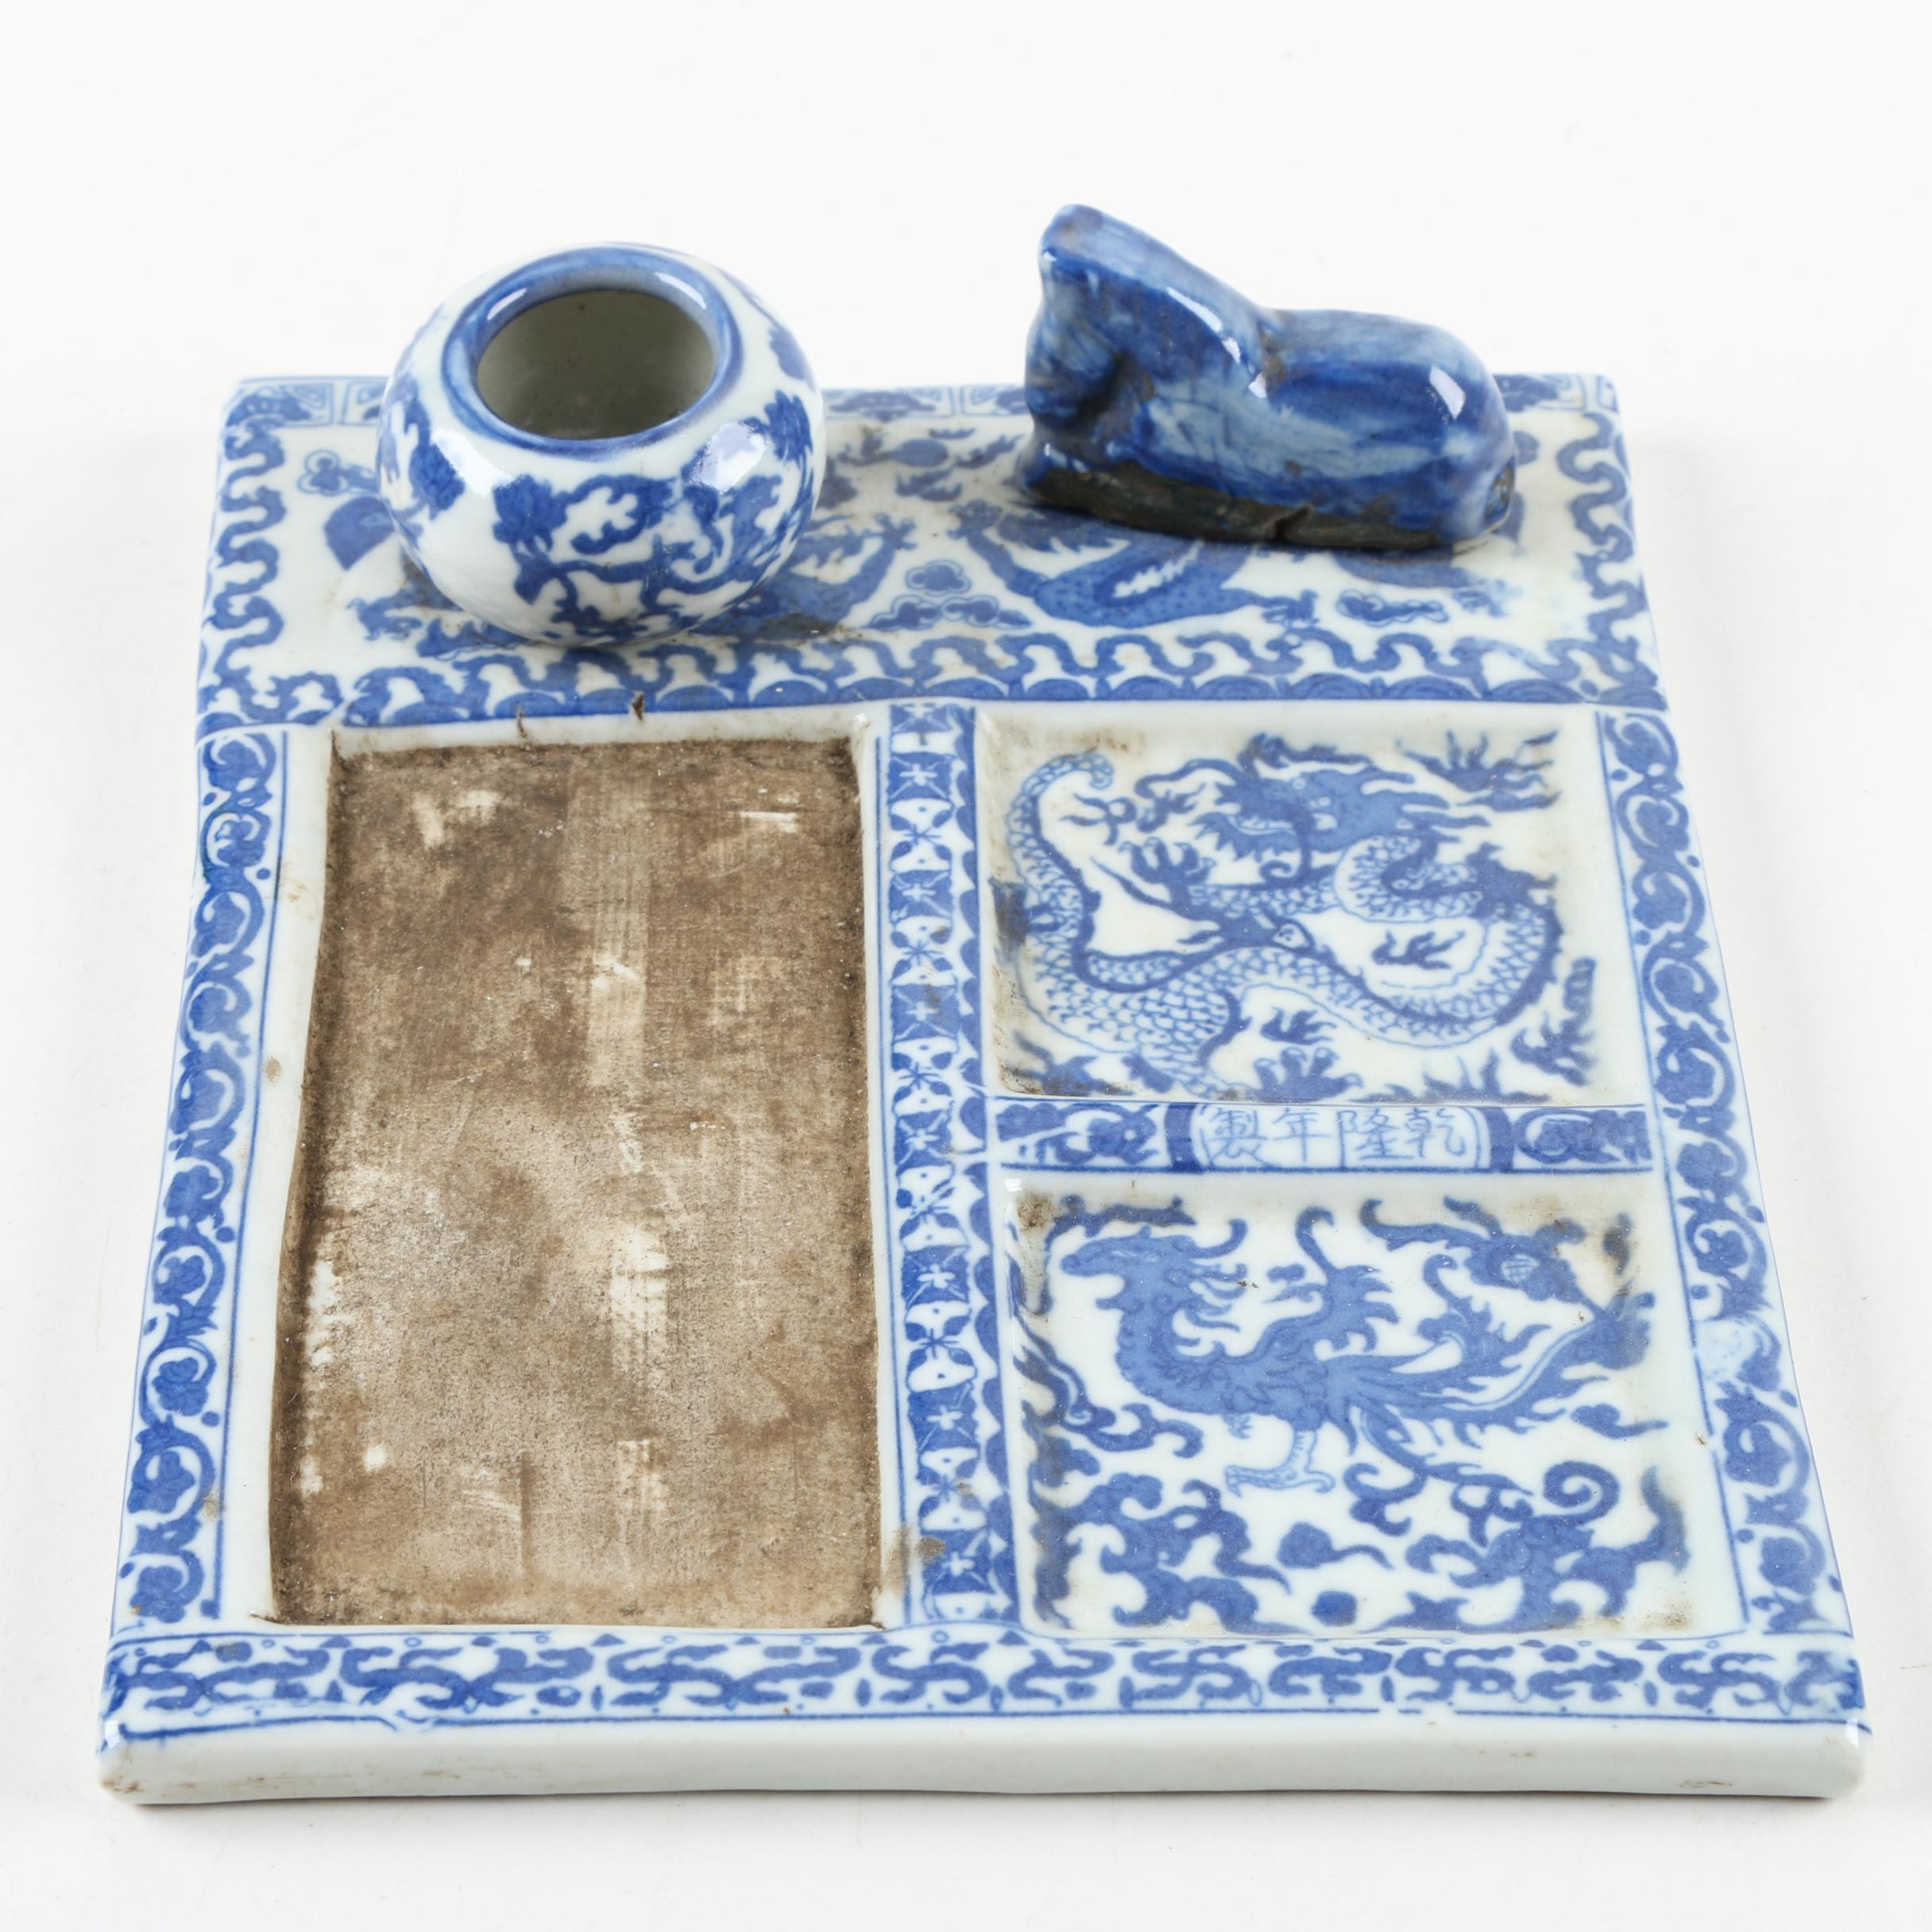 Blue and White Chinese Ceramic Inkwell